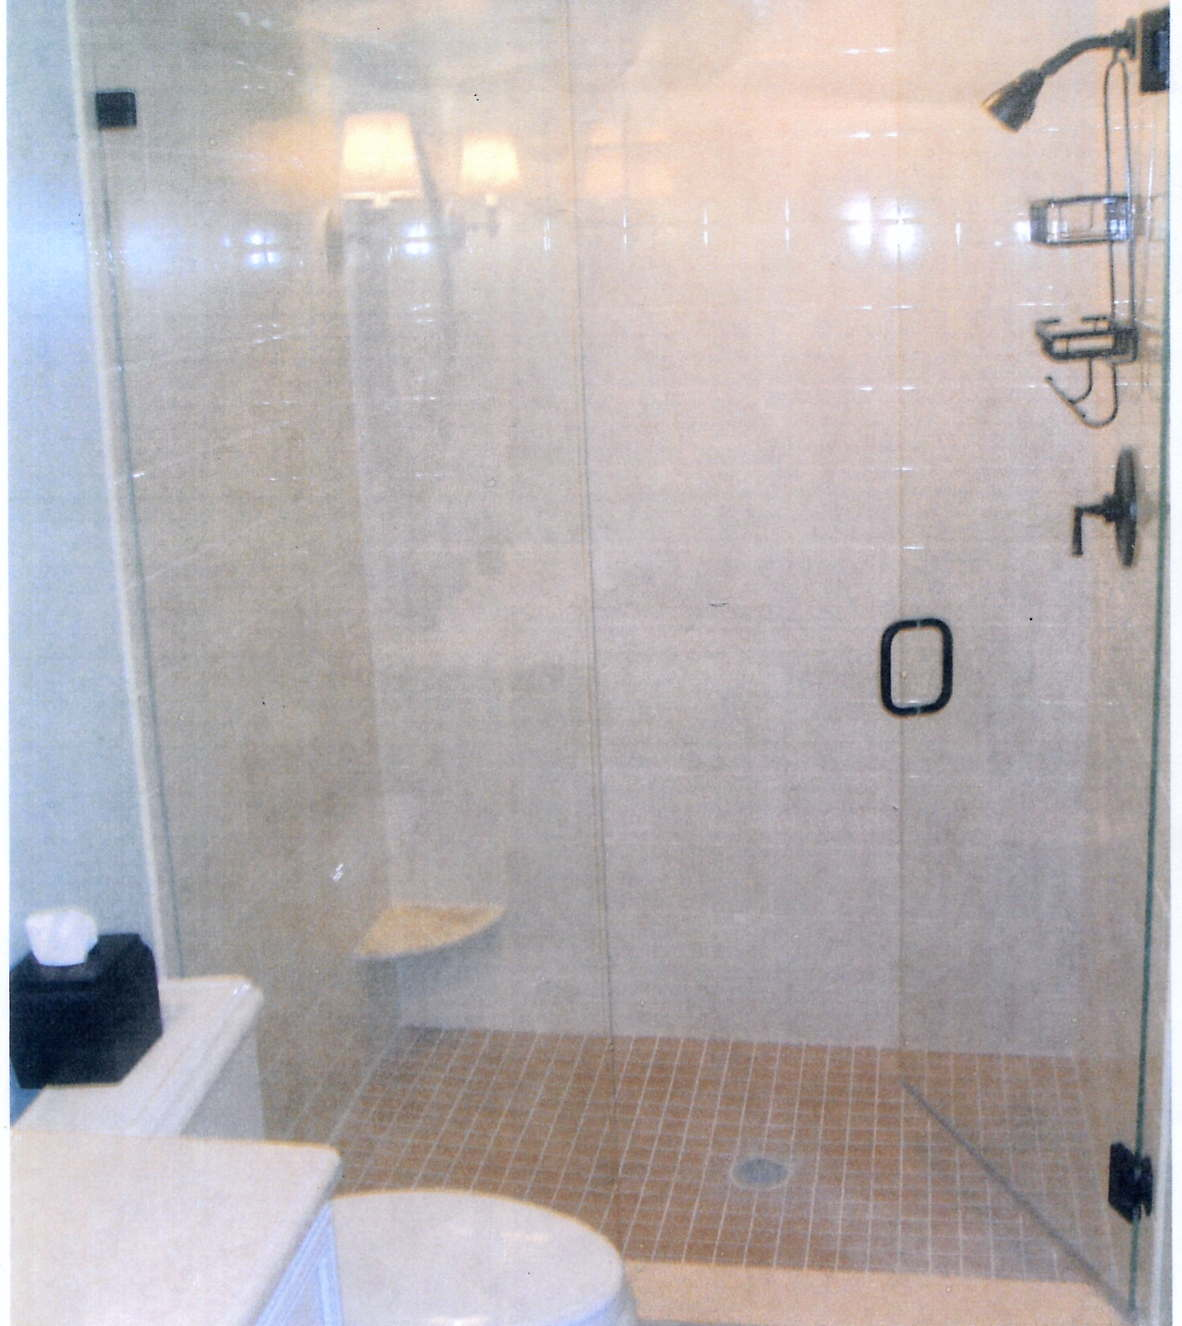 Frameless Shower Doors are Modern, Clean, and Contemporary ...